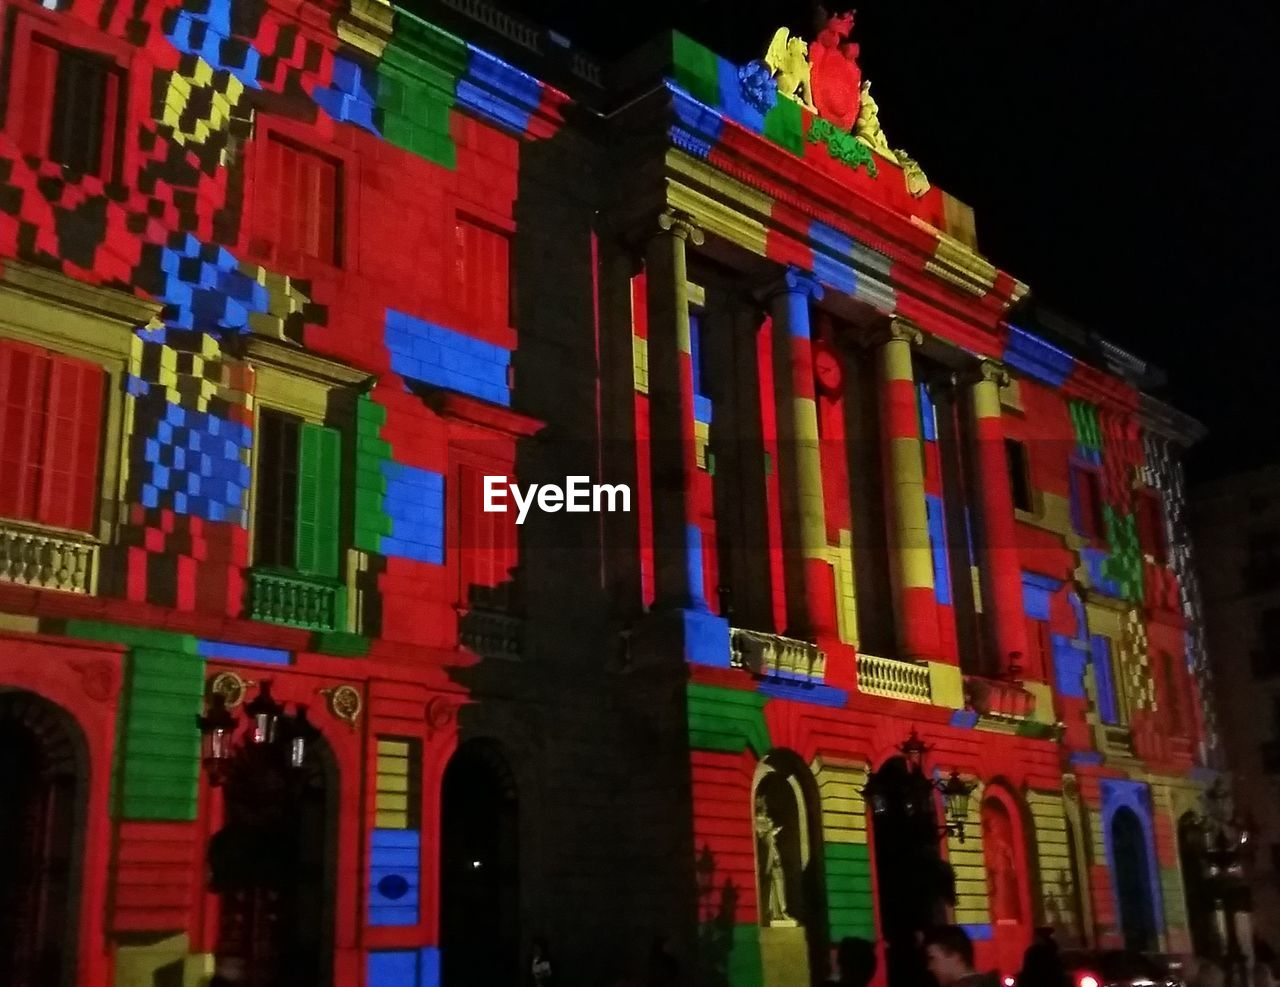 architecture, multi colored, low angle view, building exterior, built structure, history, outdoors, no people, night, illuminated